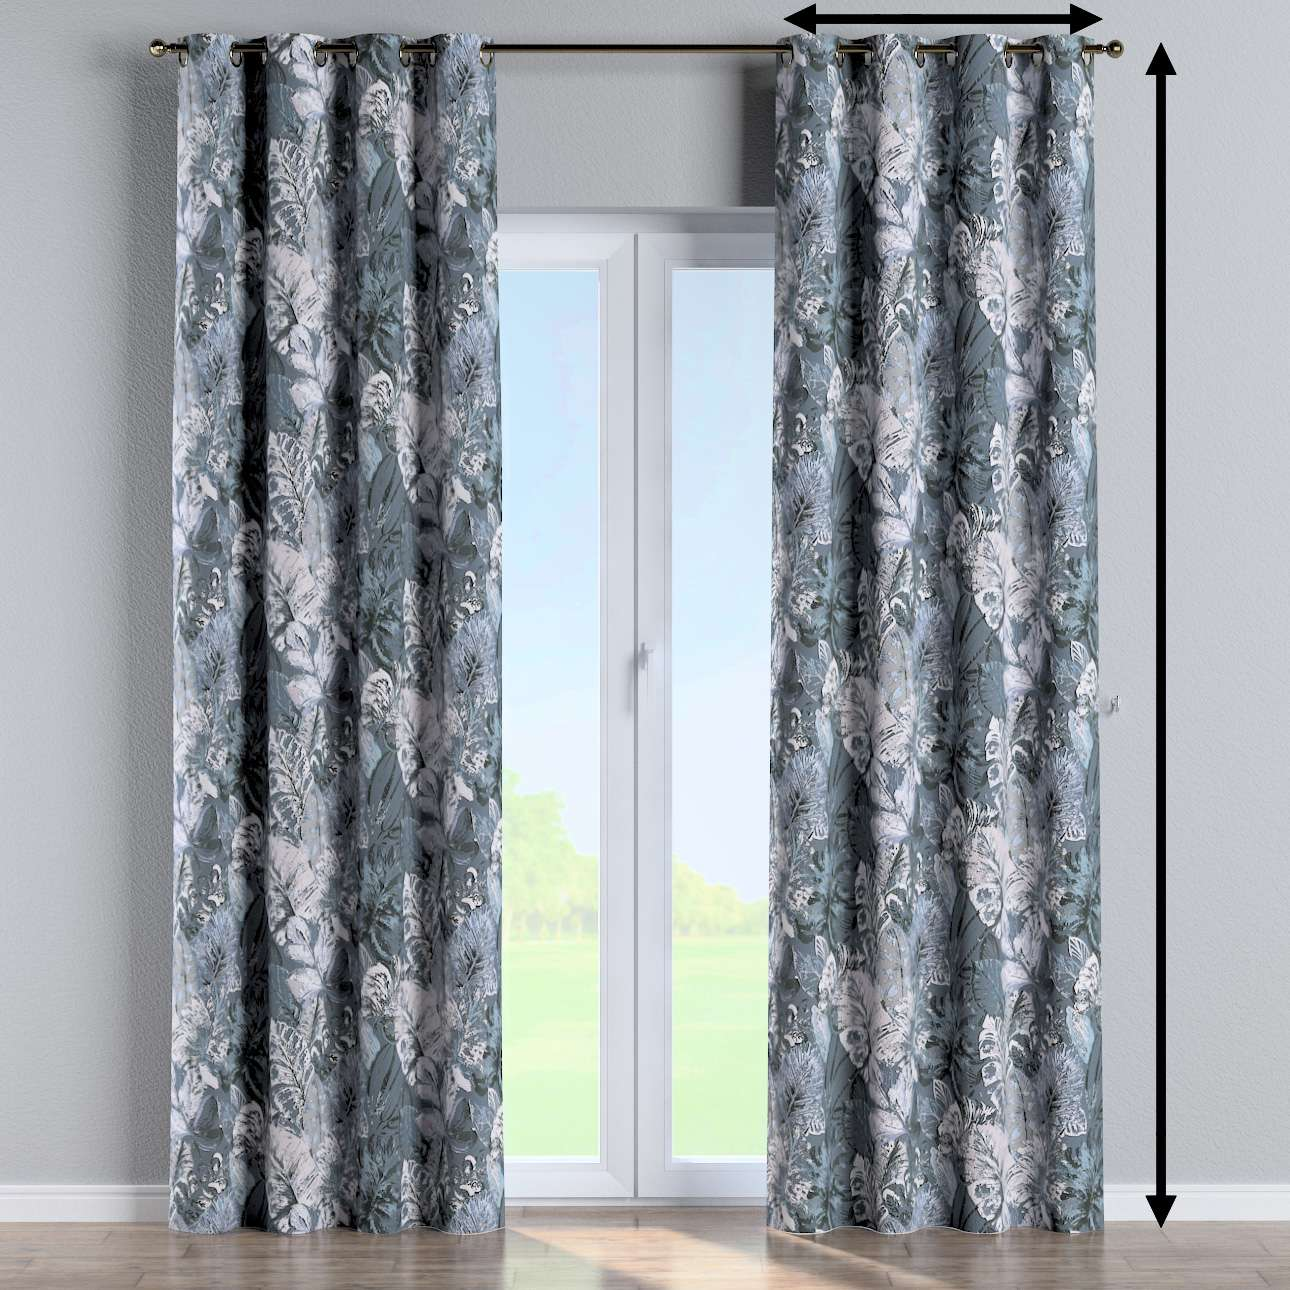 Eyelet curtain in collection Abigail, fabric: 143-18